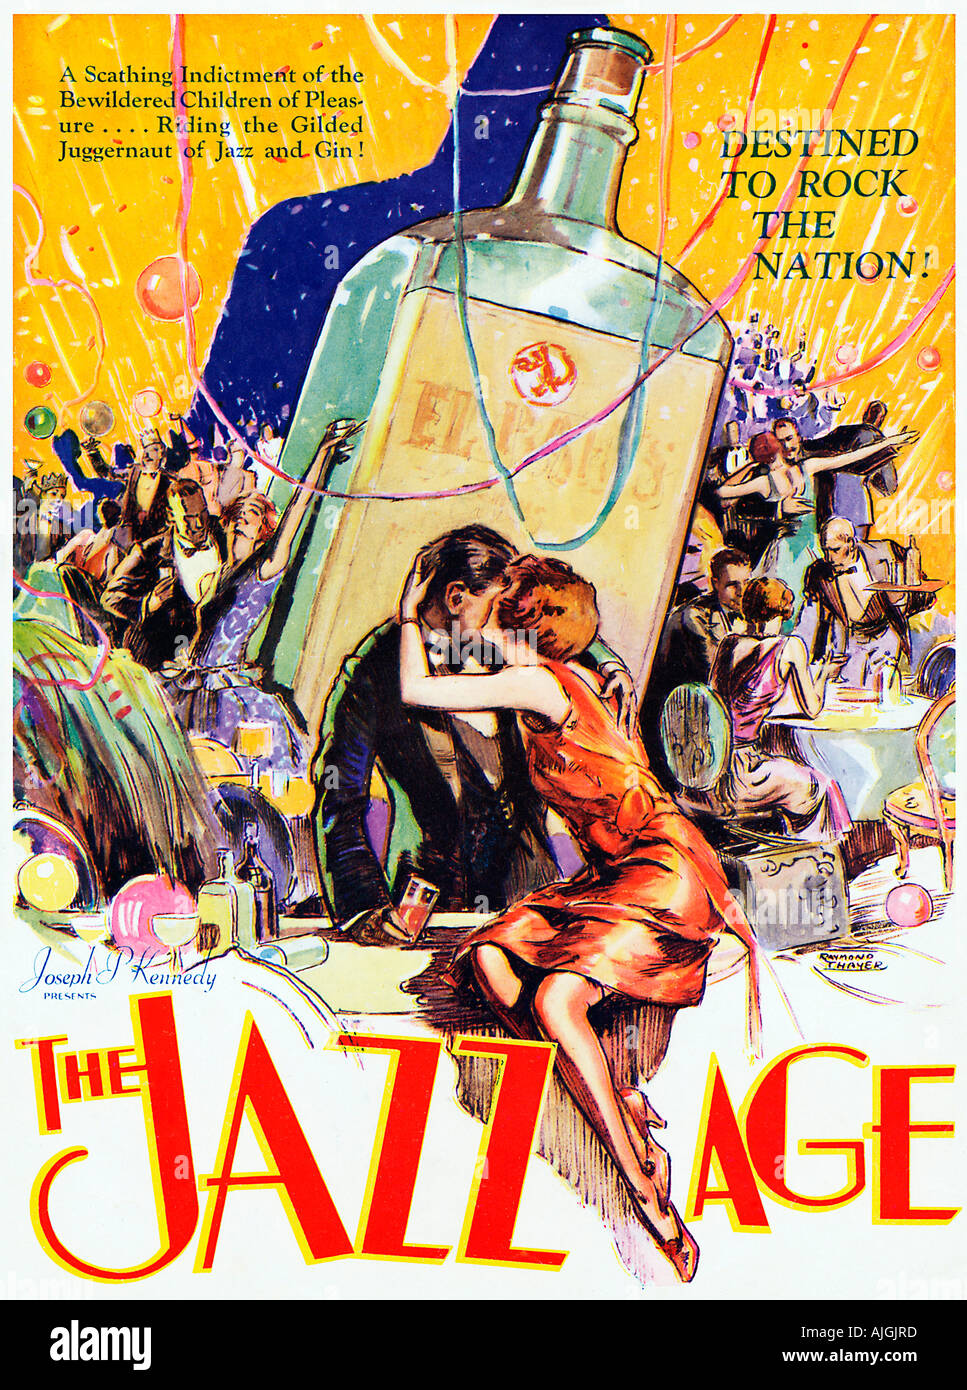 The Jazz Age, 1929 movie poster, A Scathing Indictment of the ...